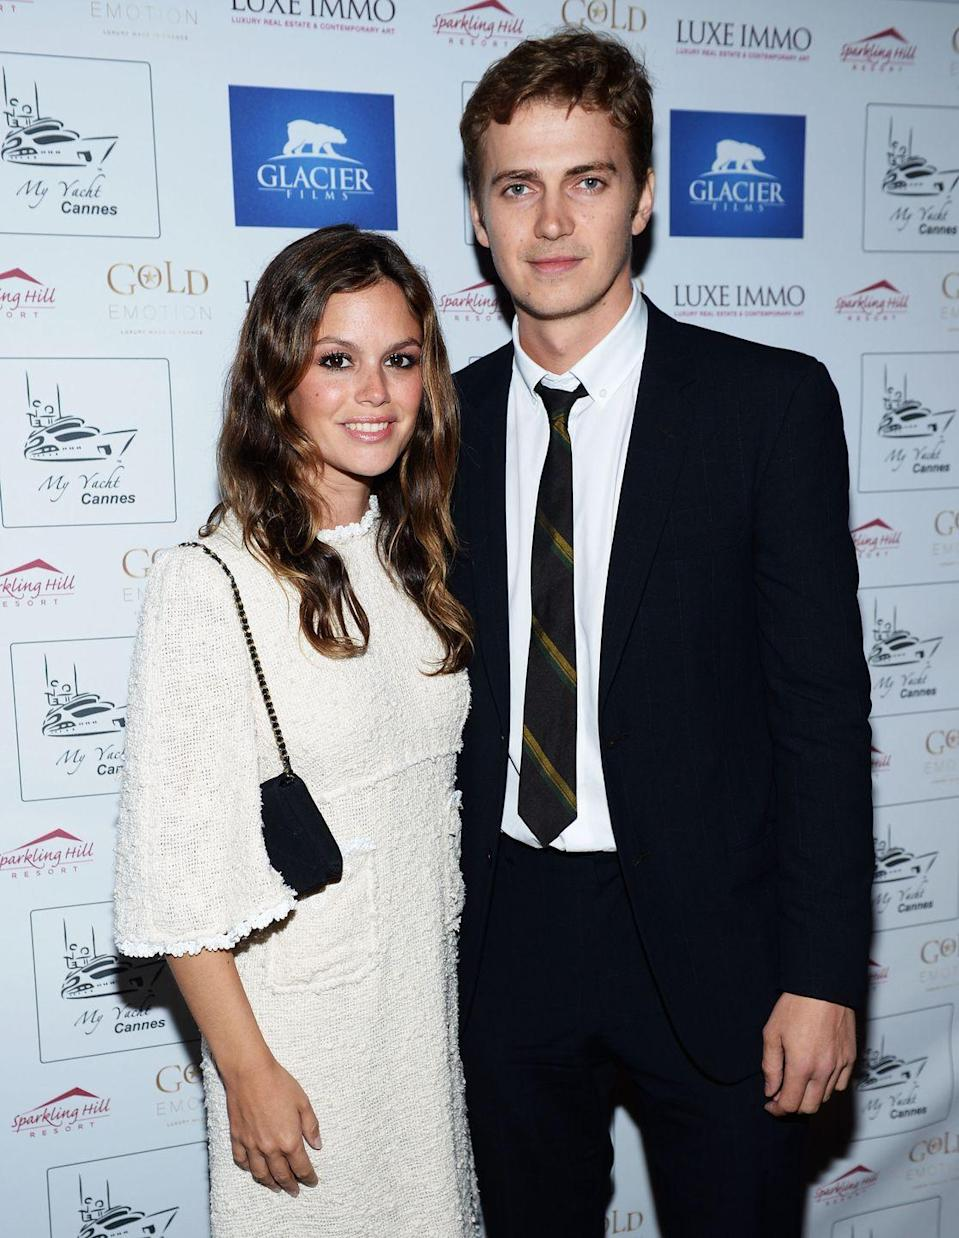 """<p>Actors Rachel Bilson and Hayden Christensen <a href=""""https://www.eonline.com/news/881422/rachel-bilson-and-hayden-christensen-split-after-10-years-they-are-officially-done"""" rel=""""nofollow noopener"""" target=""""_blank"""" data-ylk=""""slk:met on the set of the 2007 film Jumper"""" class=""""link rapid-noclick-resp"""">met on the set of the 2007 film Jumper</a>. By December 2008, the <a href=""""https://www.eonline.com/news/101379/rachel-bilson-s-engagement-ring-revealed"""" rel=""""nofollow noopener"""" target=""""_blank"""" data-ylk=""""slk:couple was engaged"""" class=""""link rapid-noclick-resp"""">couple was engaged</a>. That lasted for nearly two years when the pair called off the engagement in August 2010. They got back together a few months later, and welcomed their daughter in 2014. They officially <a href=""""https://www.eonline.com/news/881422/rachel-bilson-and-hayden-christensen-split-after-10-years-they-are-officially-done"""" rel=""""nofollow noopener"""" target=""""_blank"""" data-ylk=""""slk:called it quits in 2017"""" class=""""link rapid-noclick-resp"""">called it quits in 2017</a> after 10 years.</p>"""